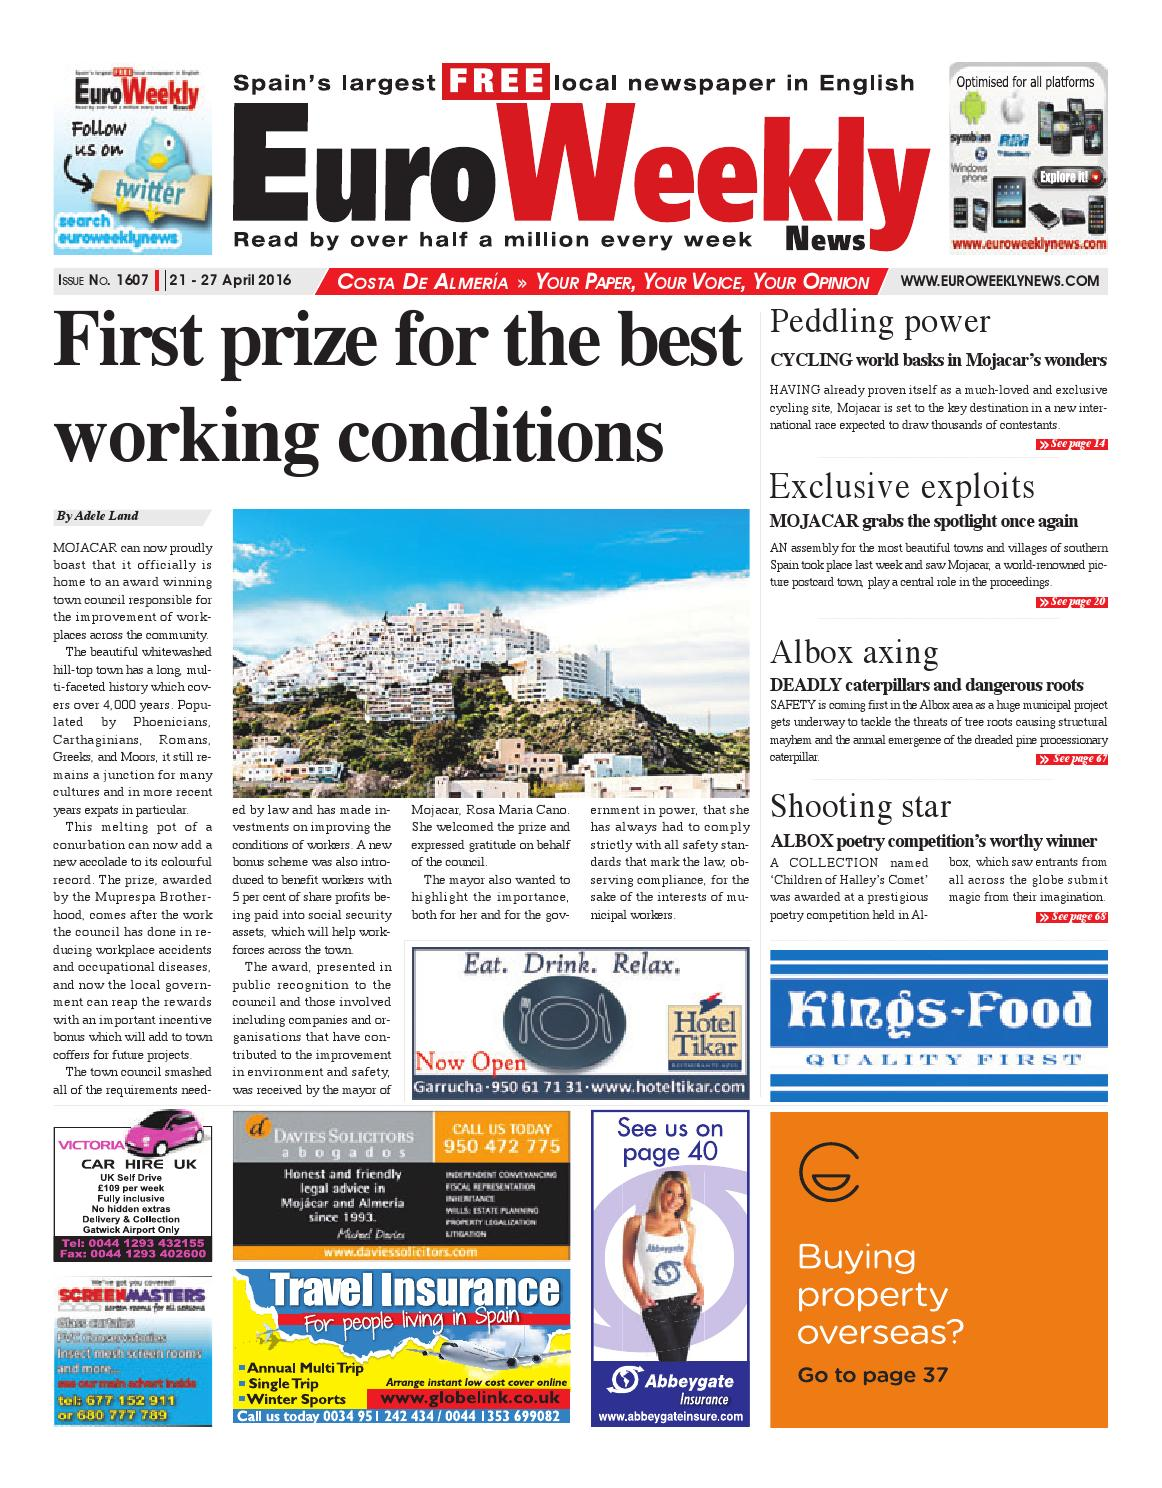 Tomato marmande agm seeds d t brown vegetable seeds - Euro Weekly News Costa De Almeria 21 27 April 2016 Issue 1607 By Euro Weekly News Media S A Issuu